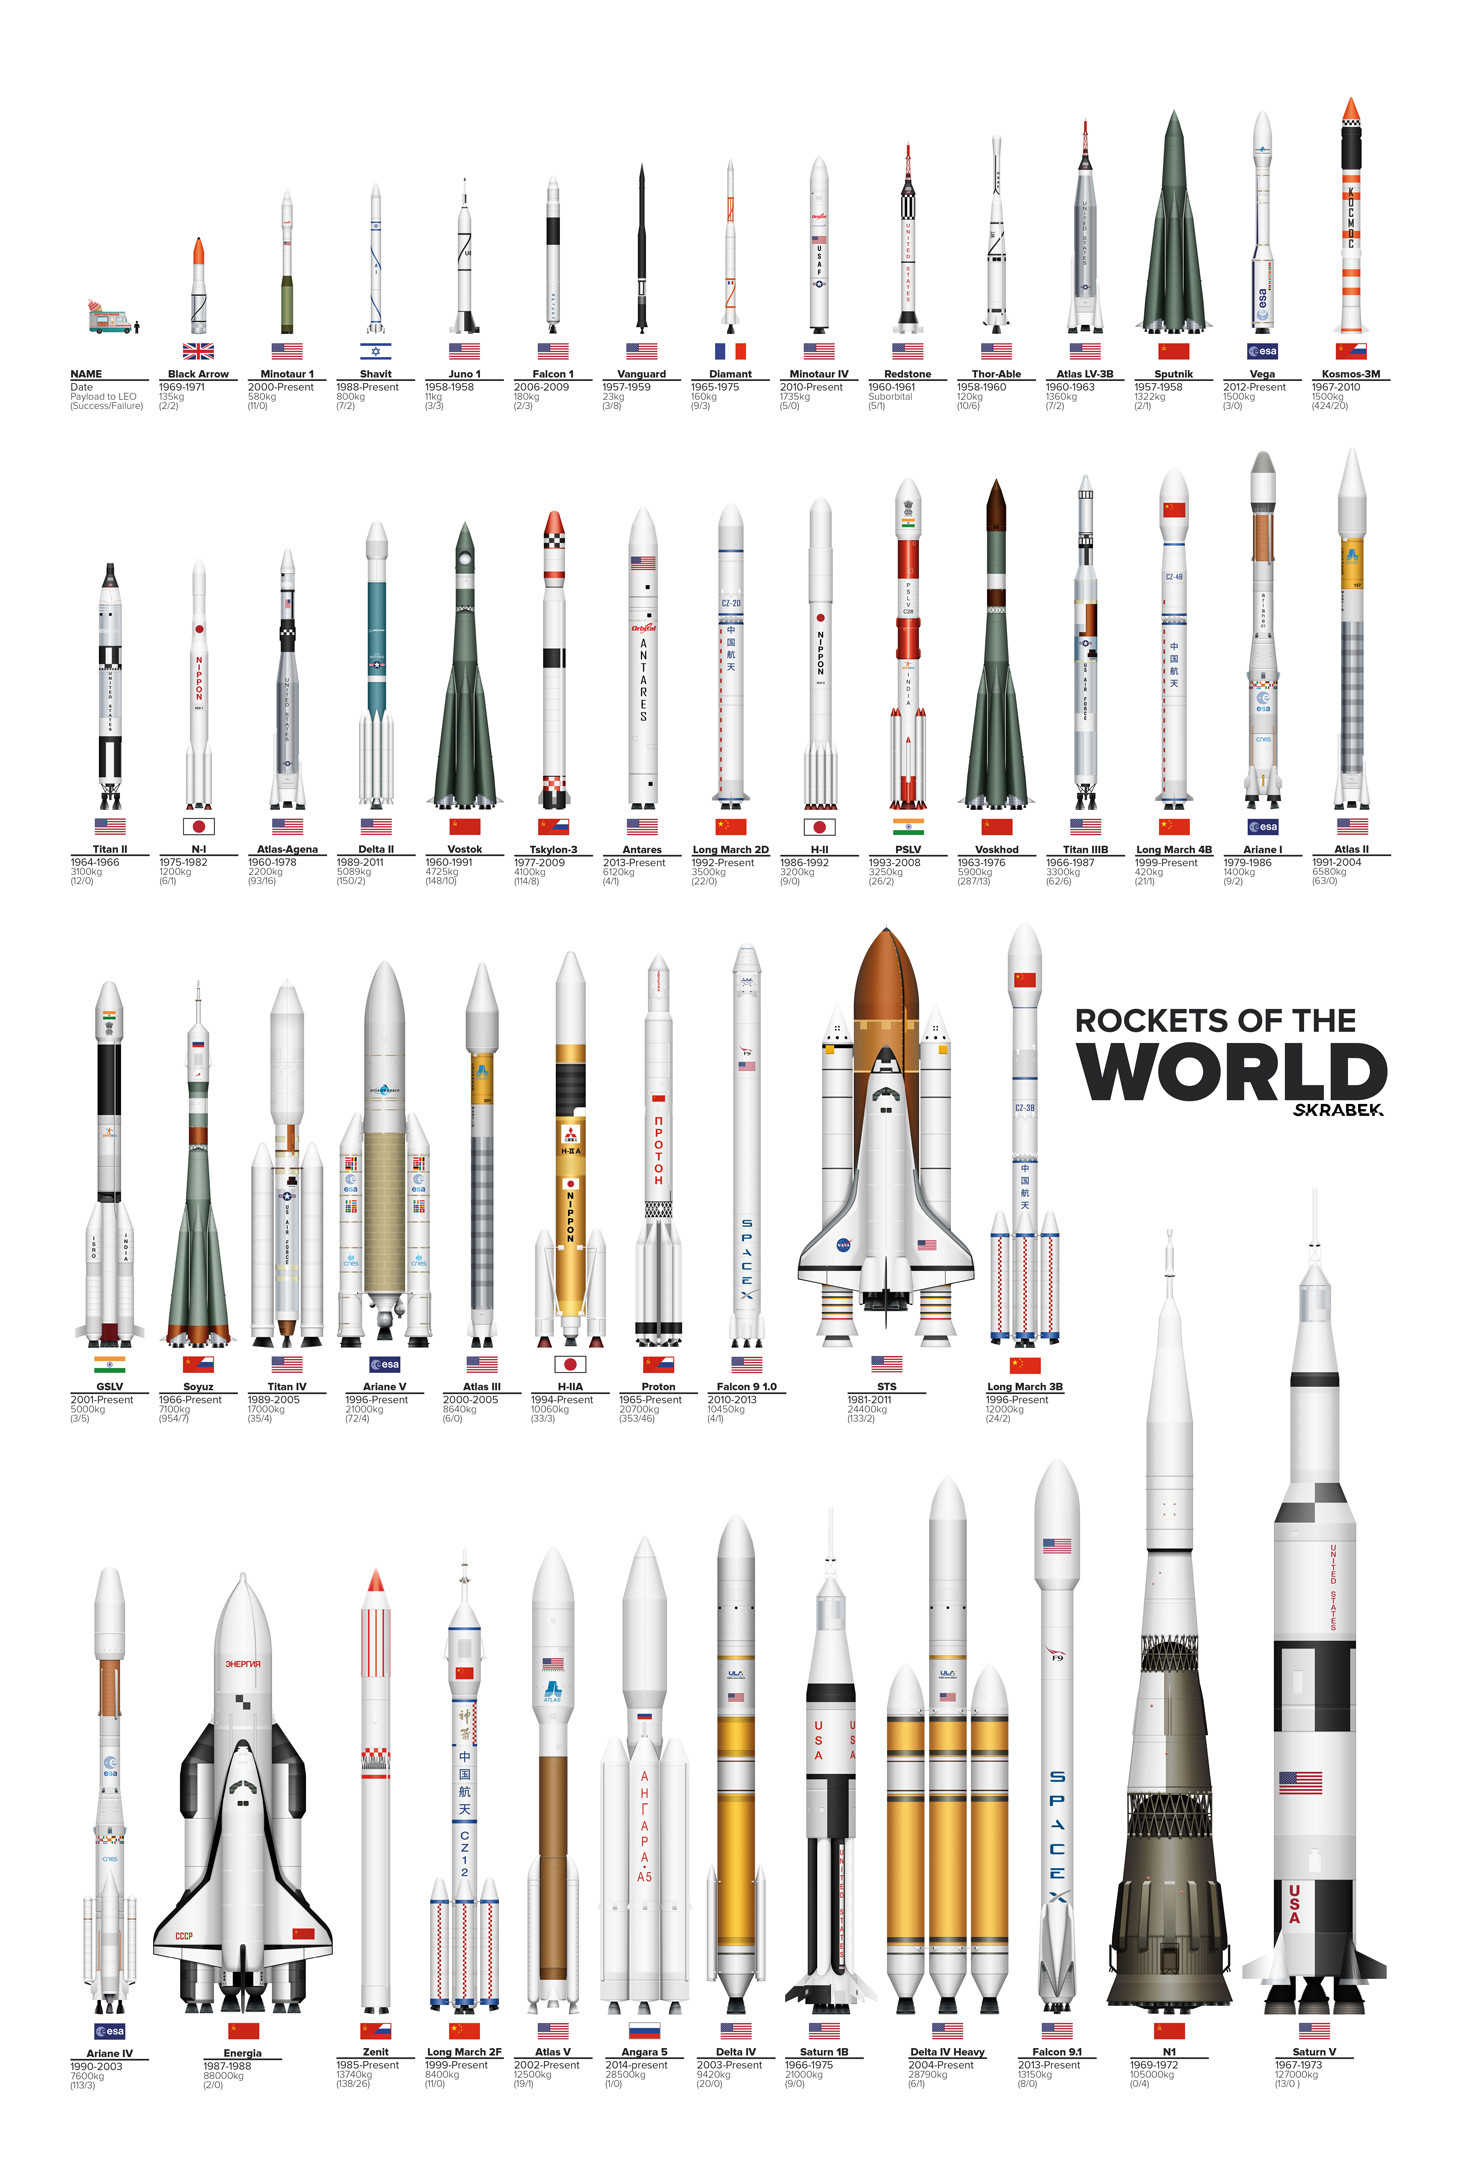 1000+ images about Rocket families on Pinterest.